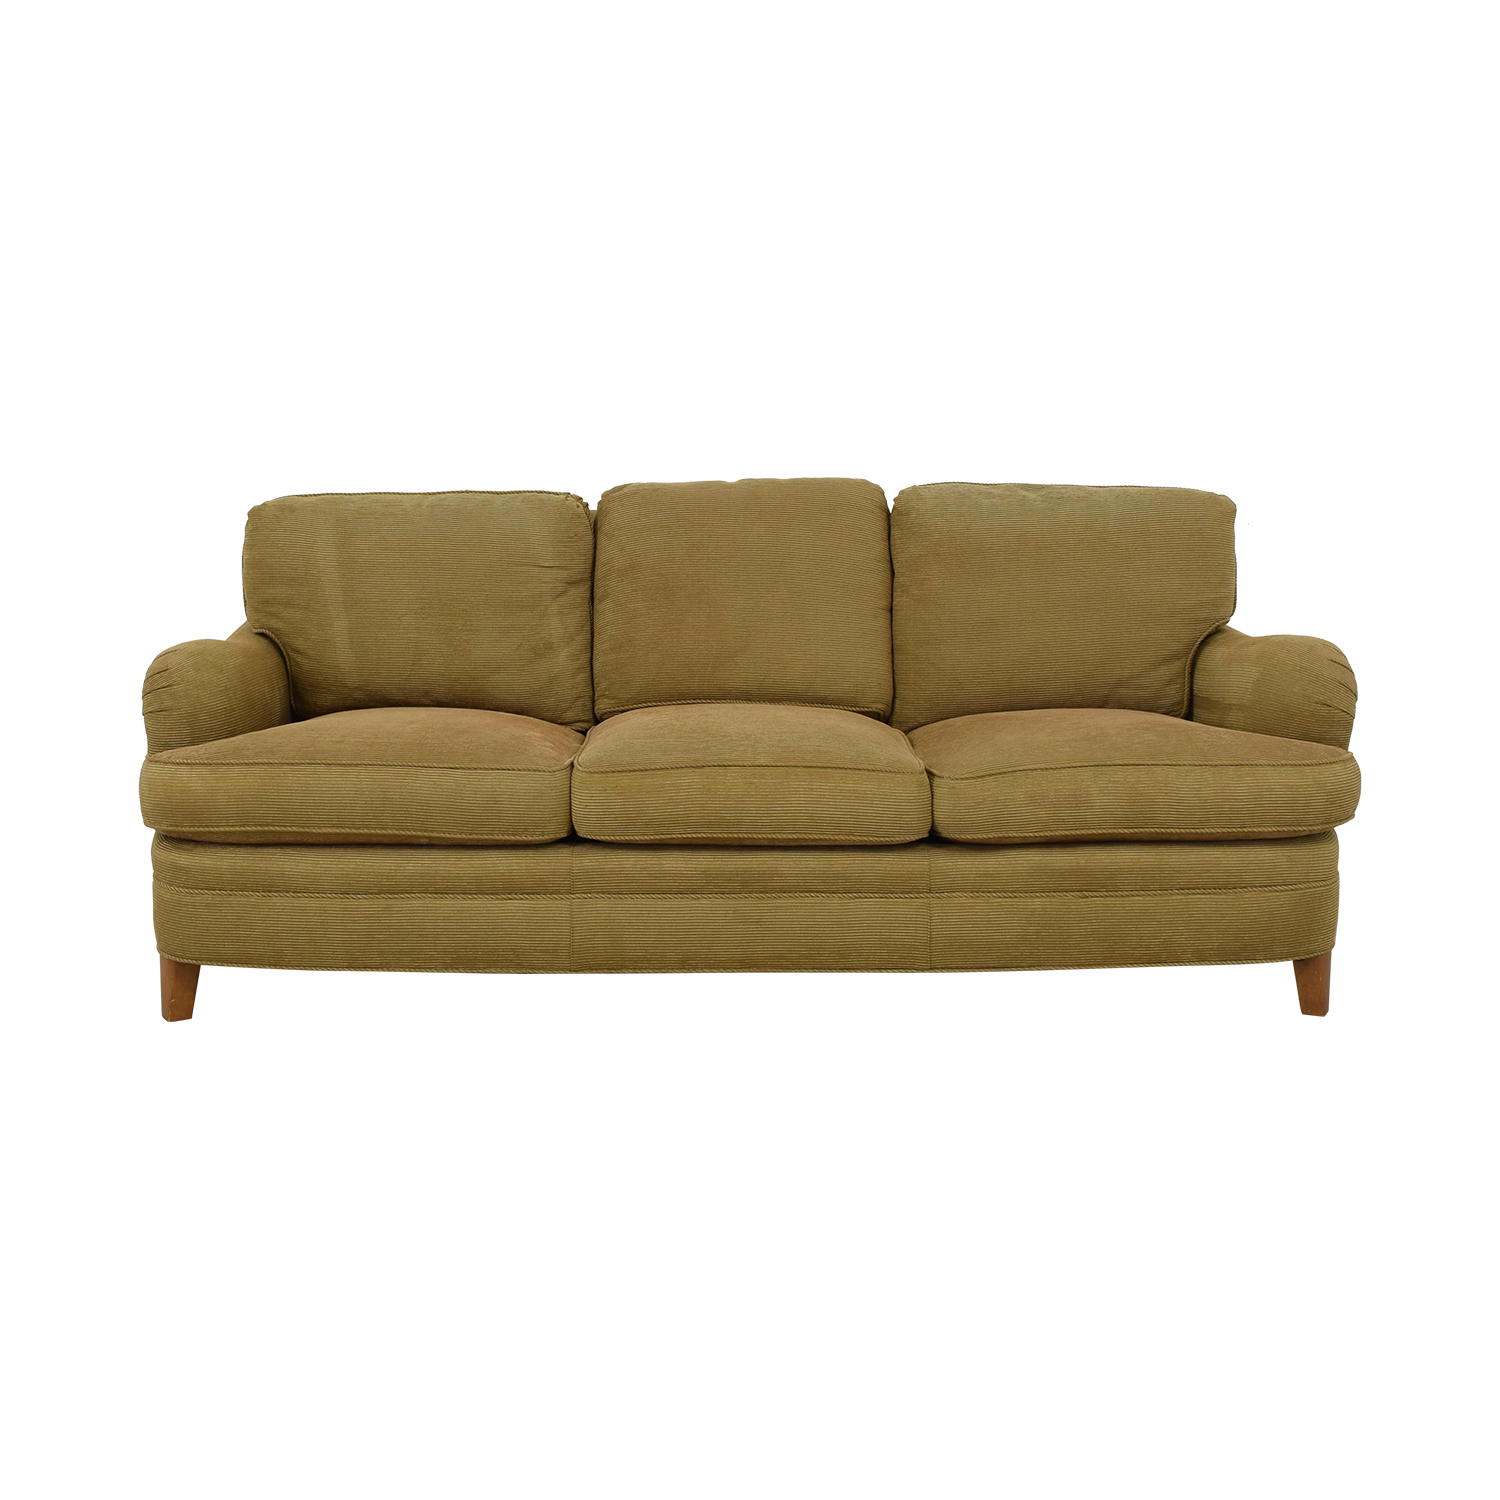 Heirloom Furniture Heirloom Furniture Sage Woven Upholstery Three Seat Sofa Sofas